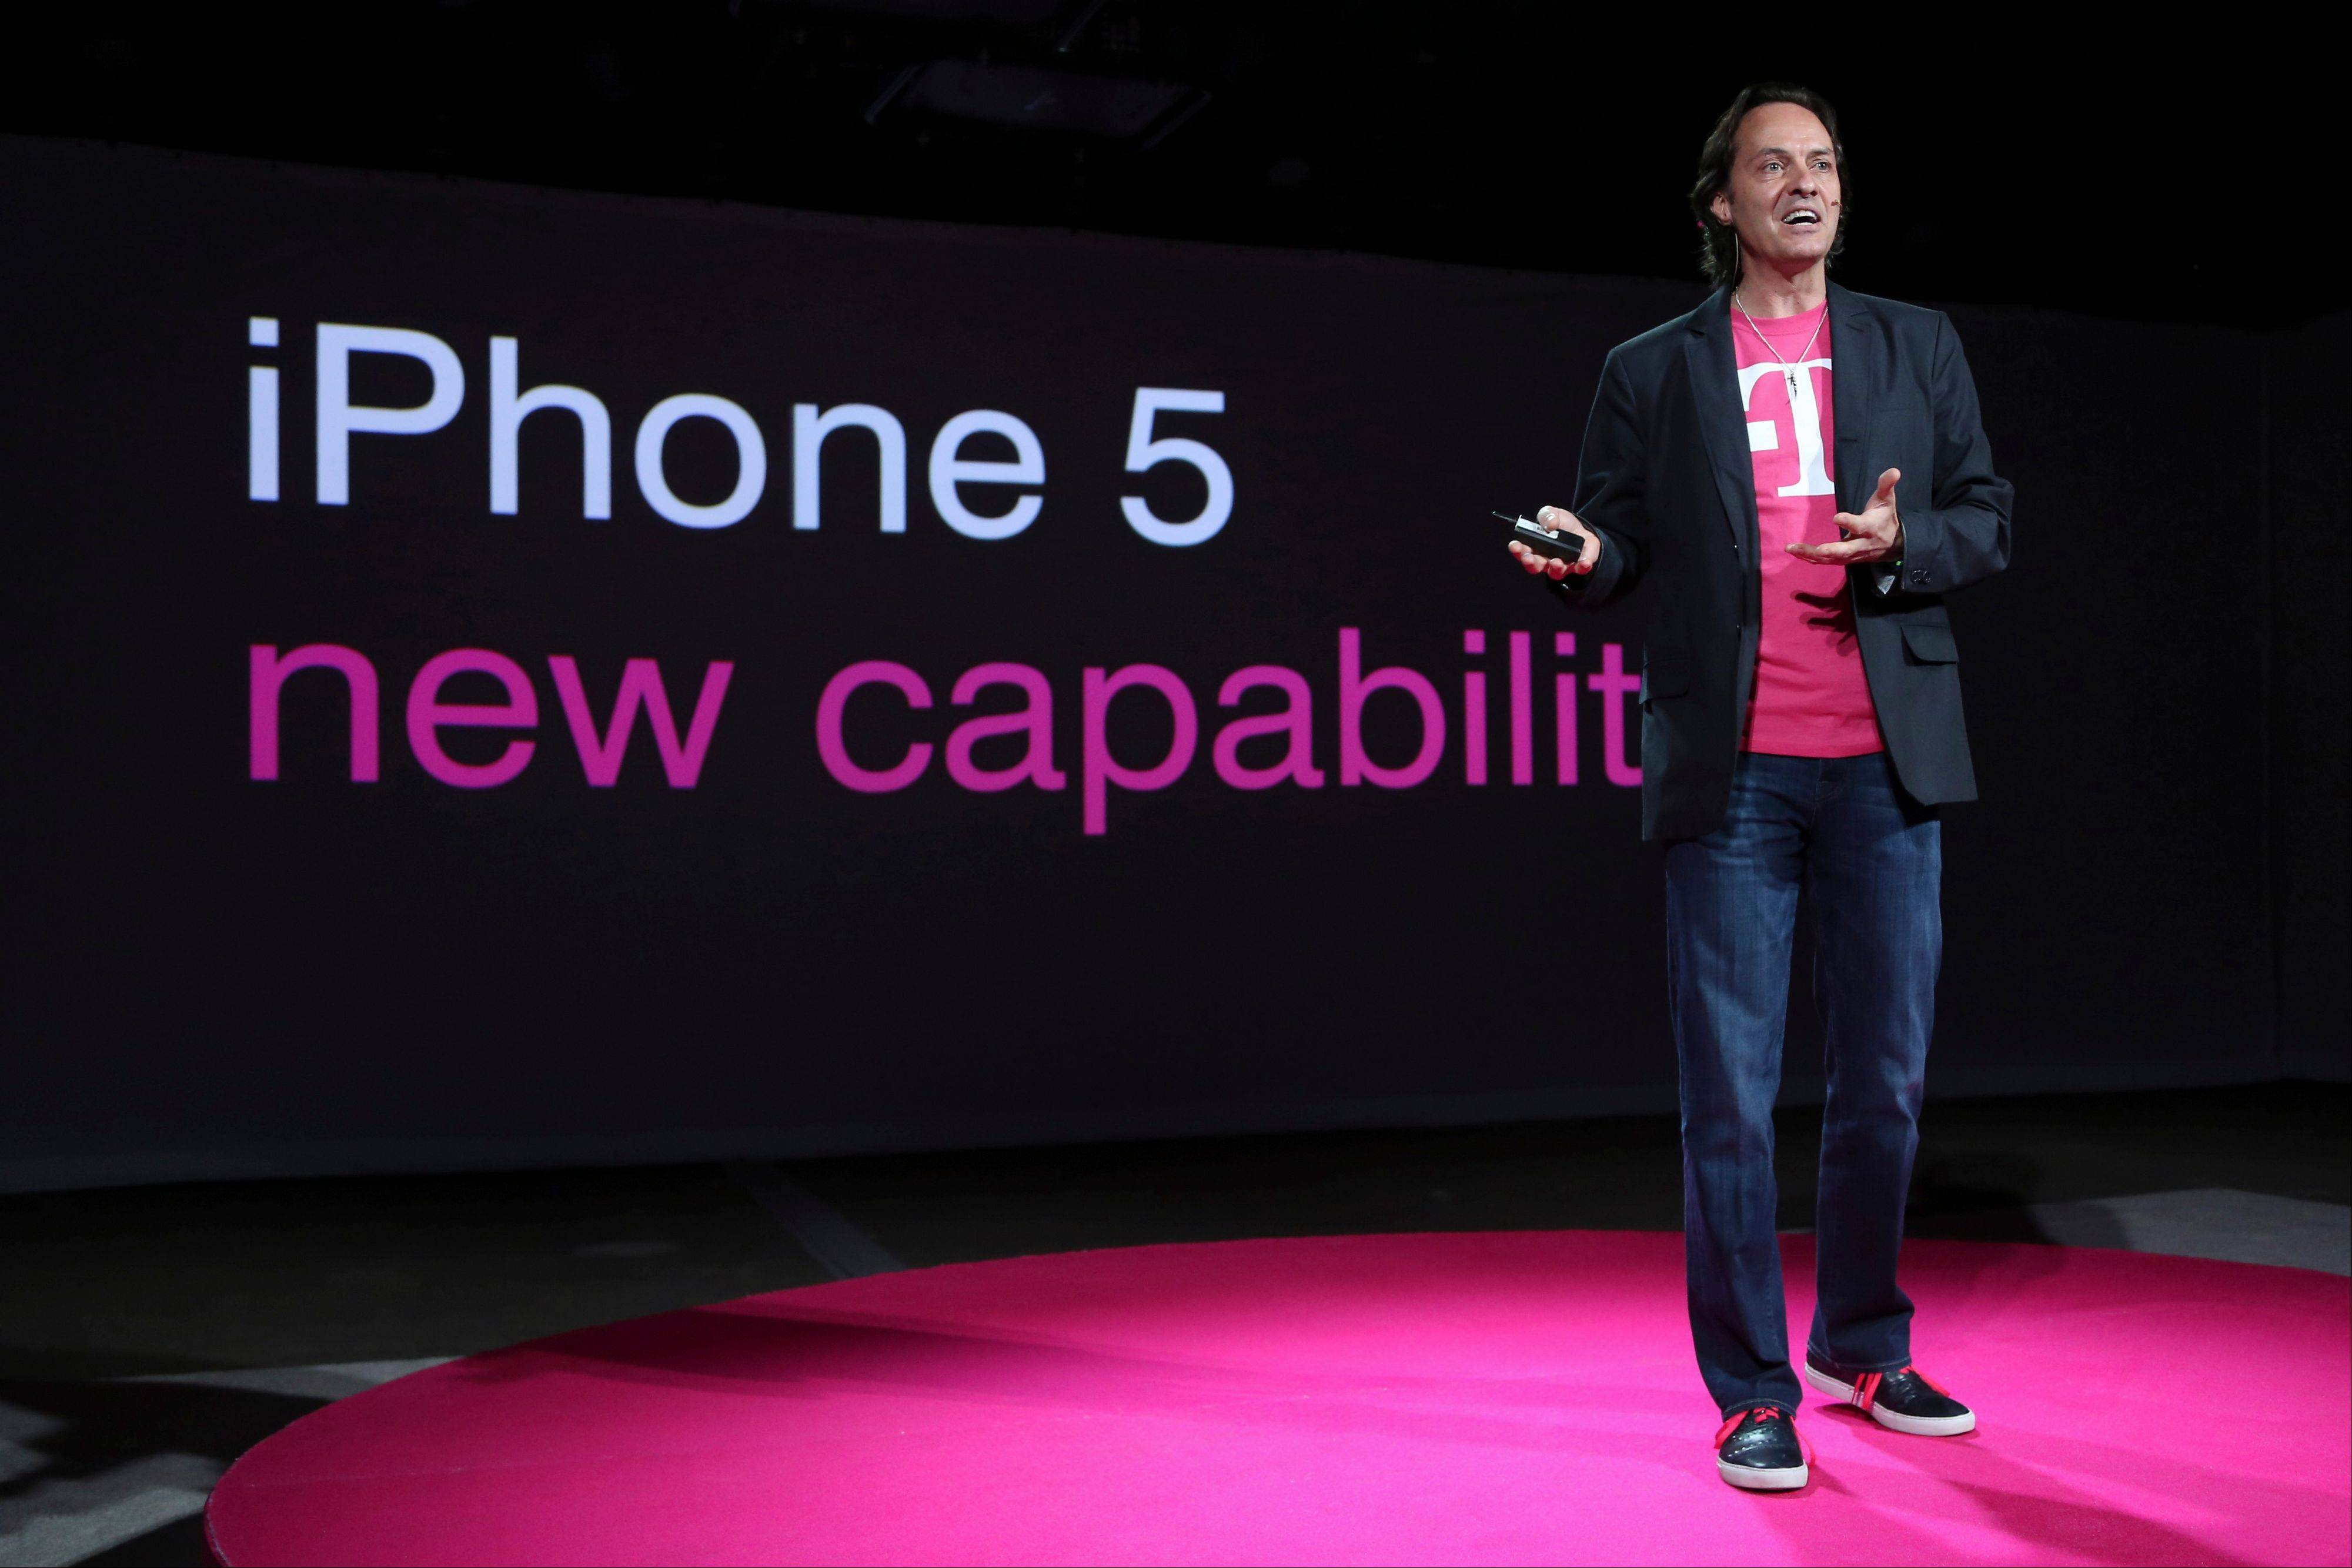 T-Mobile CEO John Legere, speaking Tueseday in New York, detailed how the company will start offering the iPhone 5 on April 12, filling what Legere said was �a huge void� in its phone lineup. The company is currently the only major U.S. carrier not to offer Apple�s popular smartphone.